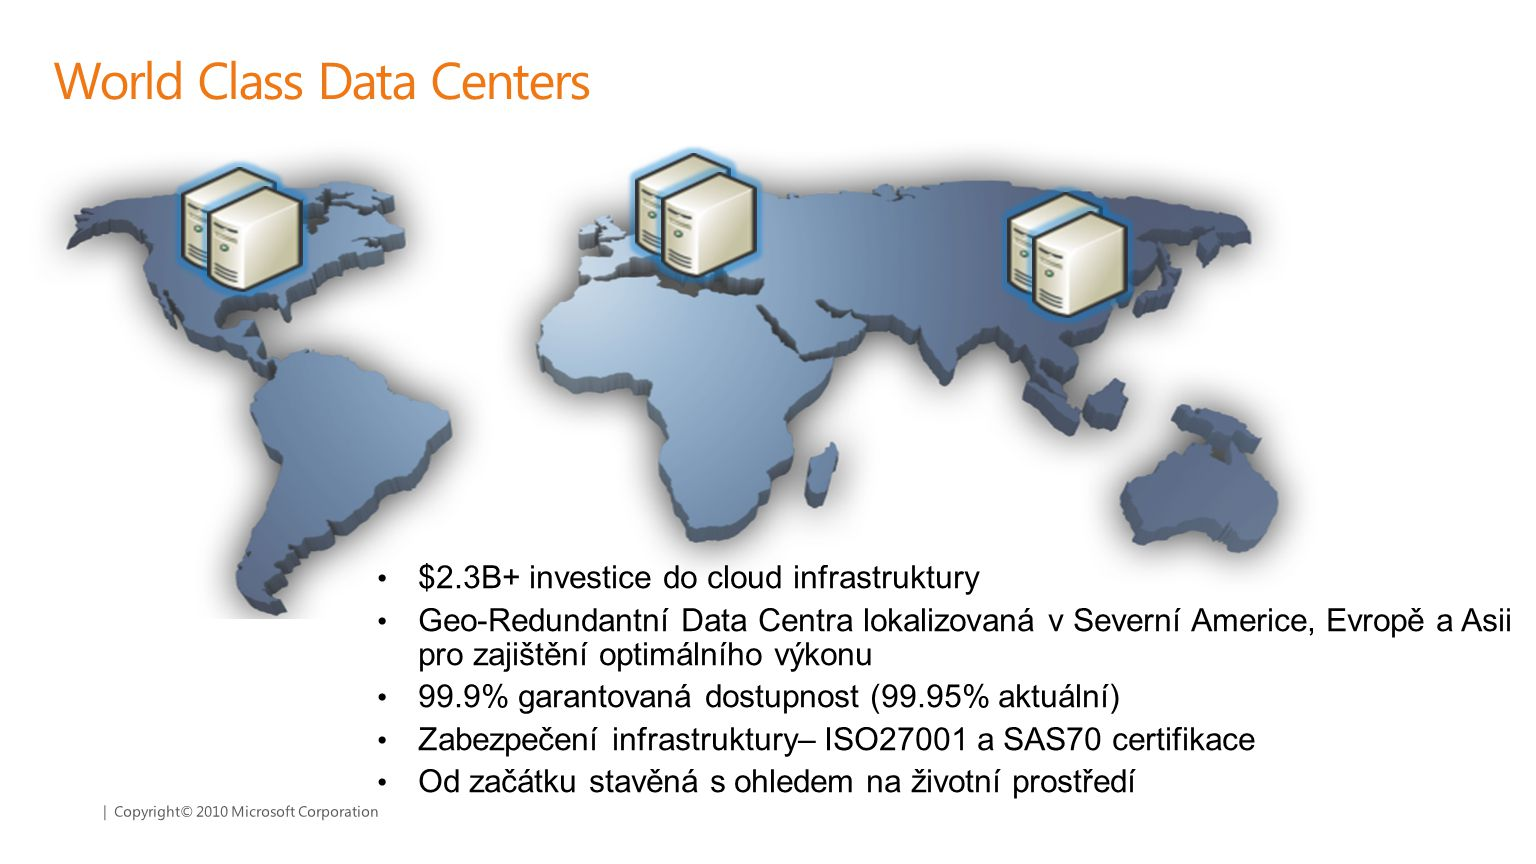 World Class Data Centers